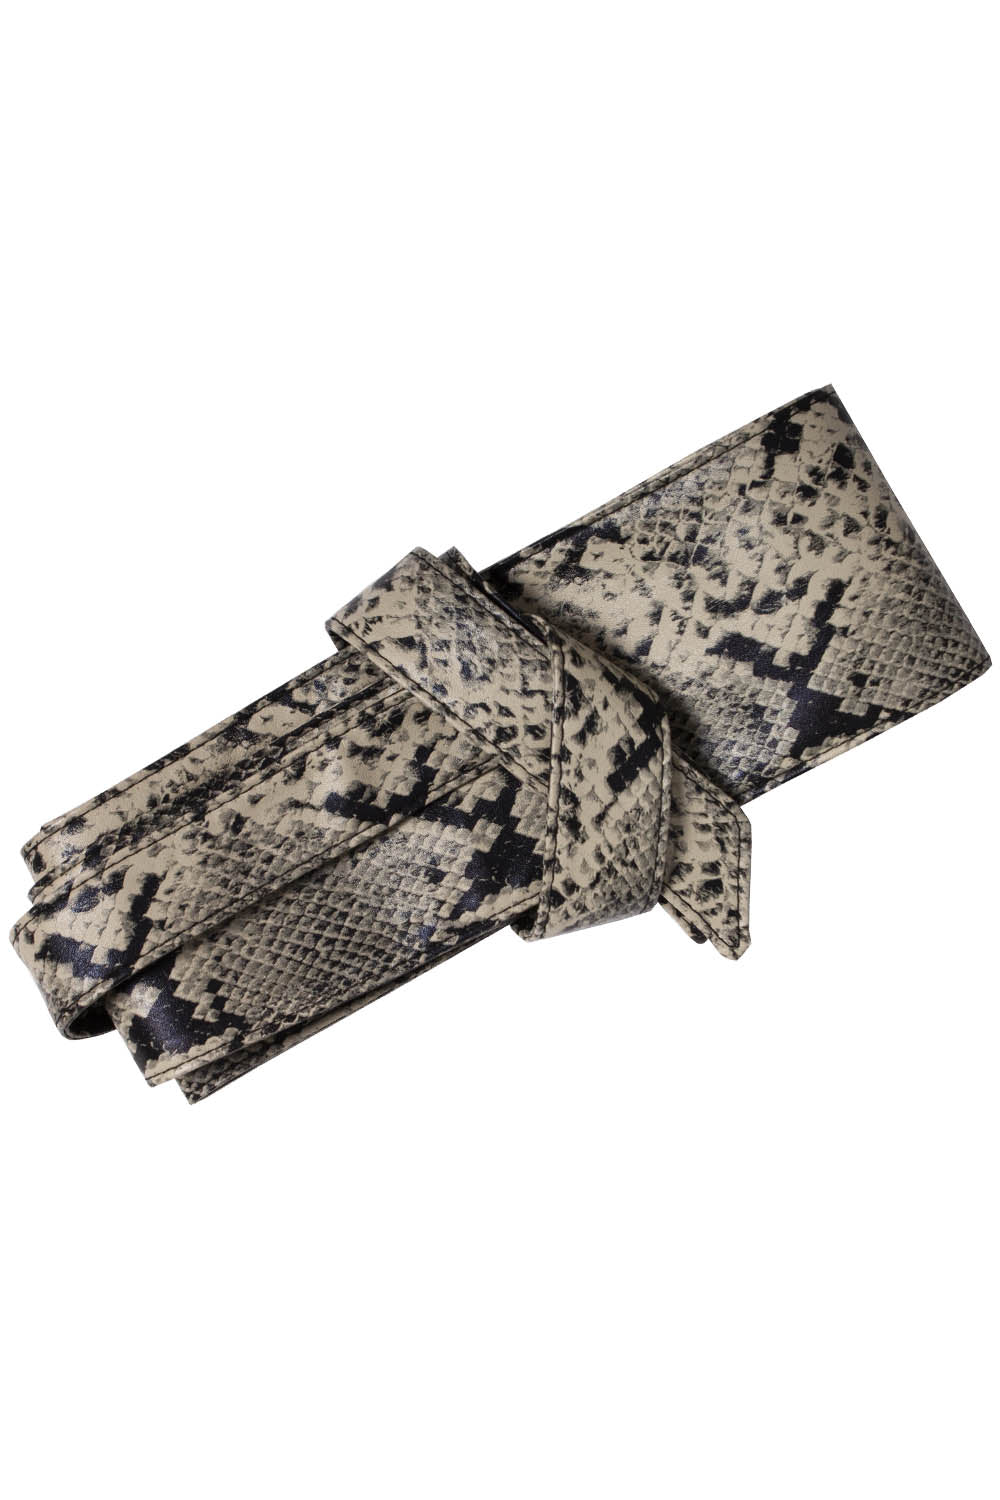 Wrap It Up Obi Belt - Python Vegan Leather - Harlow